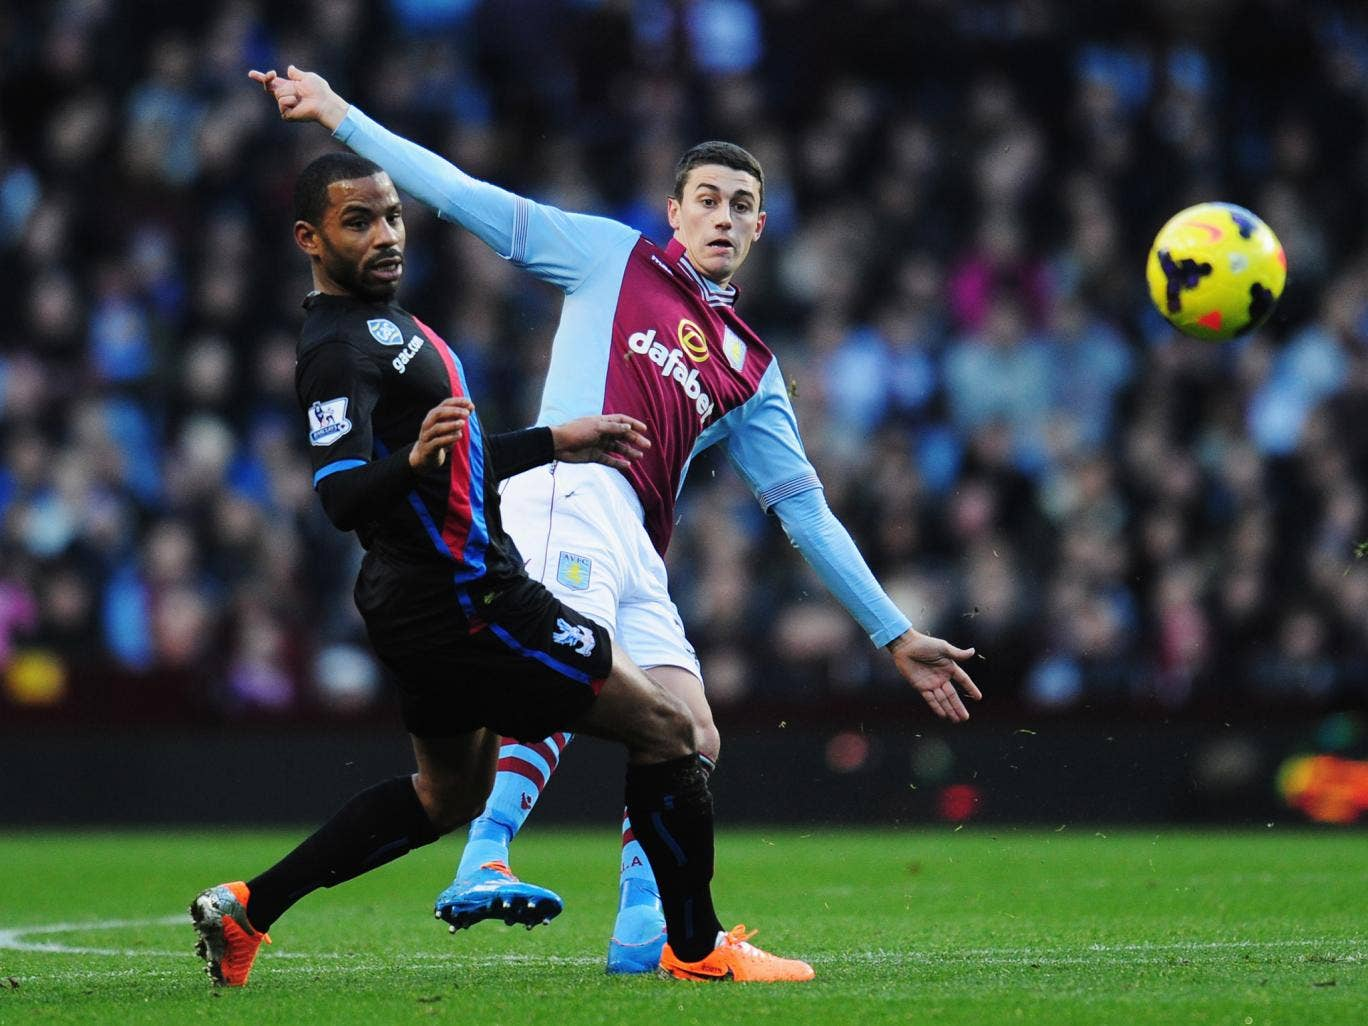 Jason Puncheon (L) and Matthew Lowton (R) compete for the ball during the match between Aston Villa and Crystal Palace